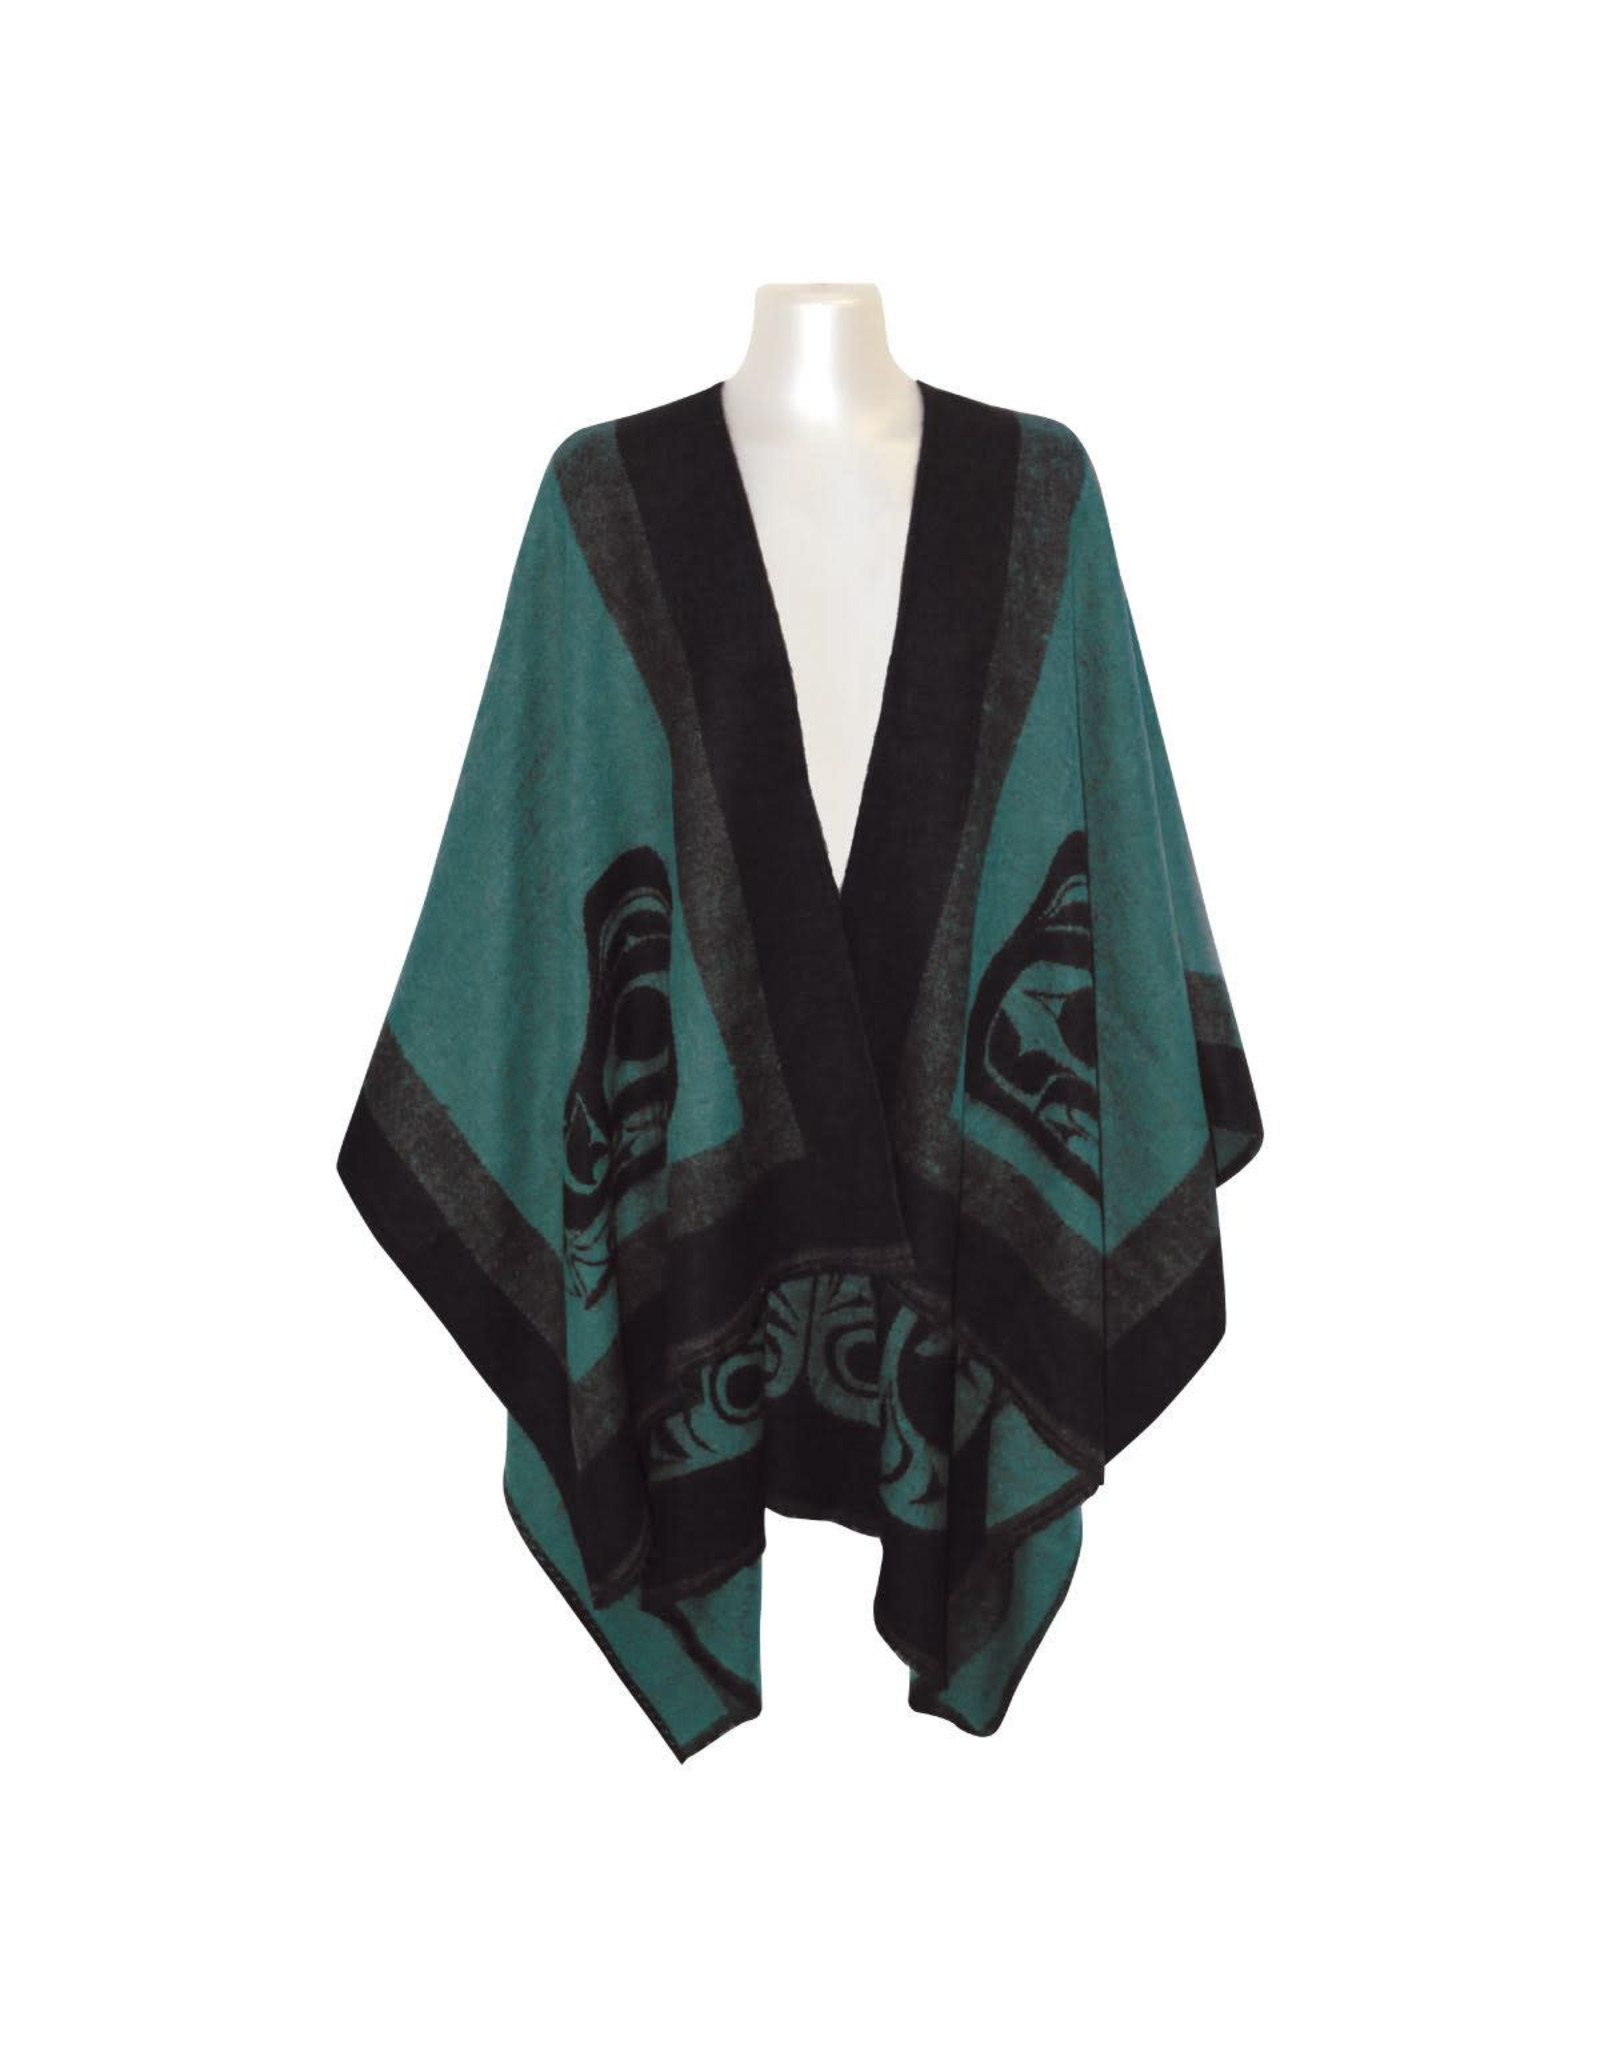 Reversible Wrap - Teal Sea Wolf (WRAP3)